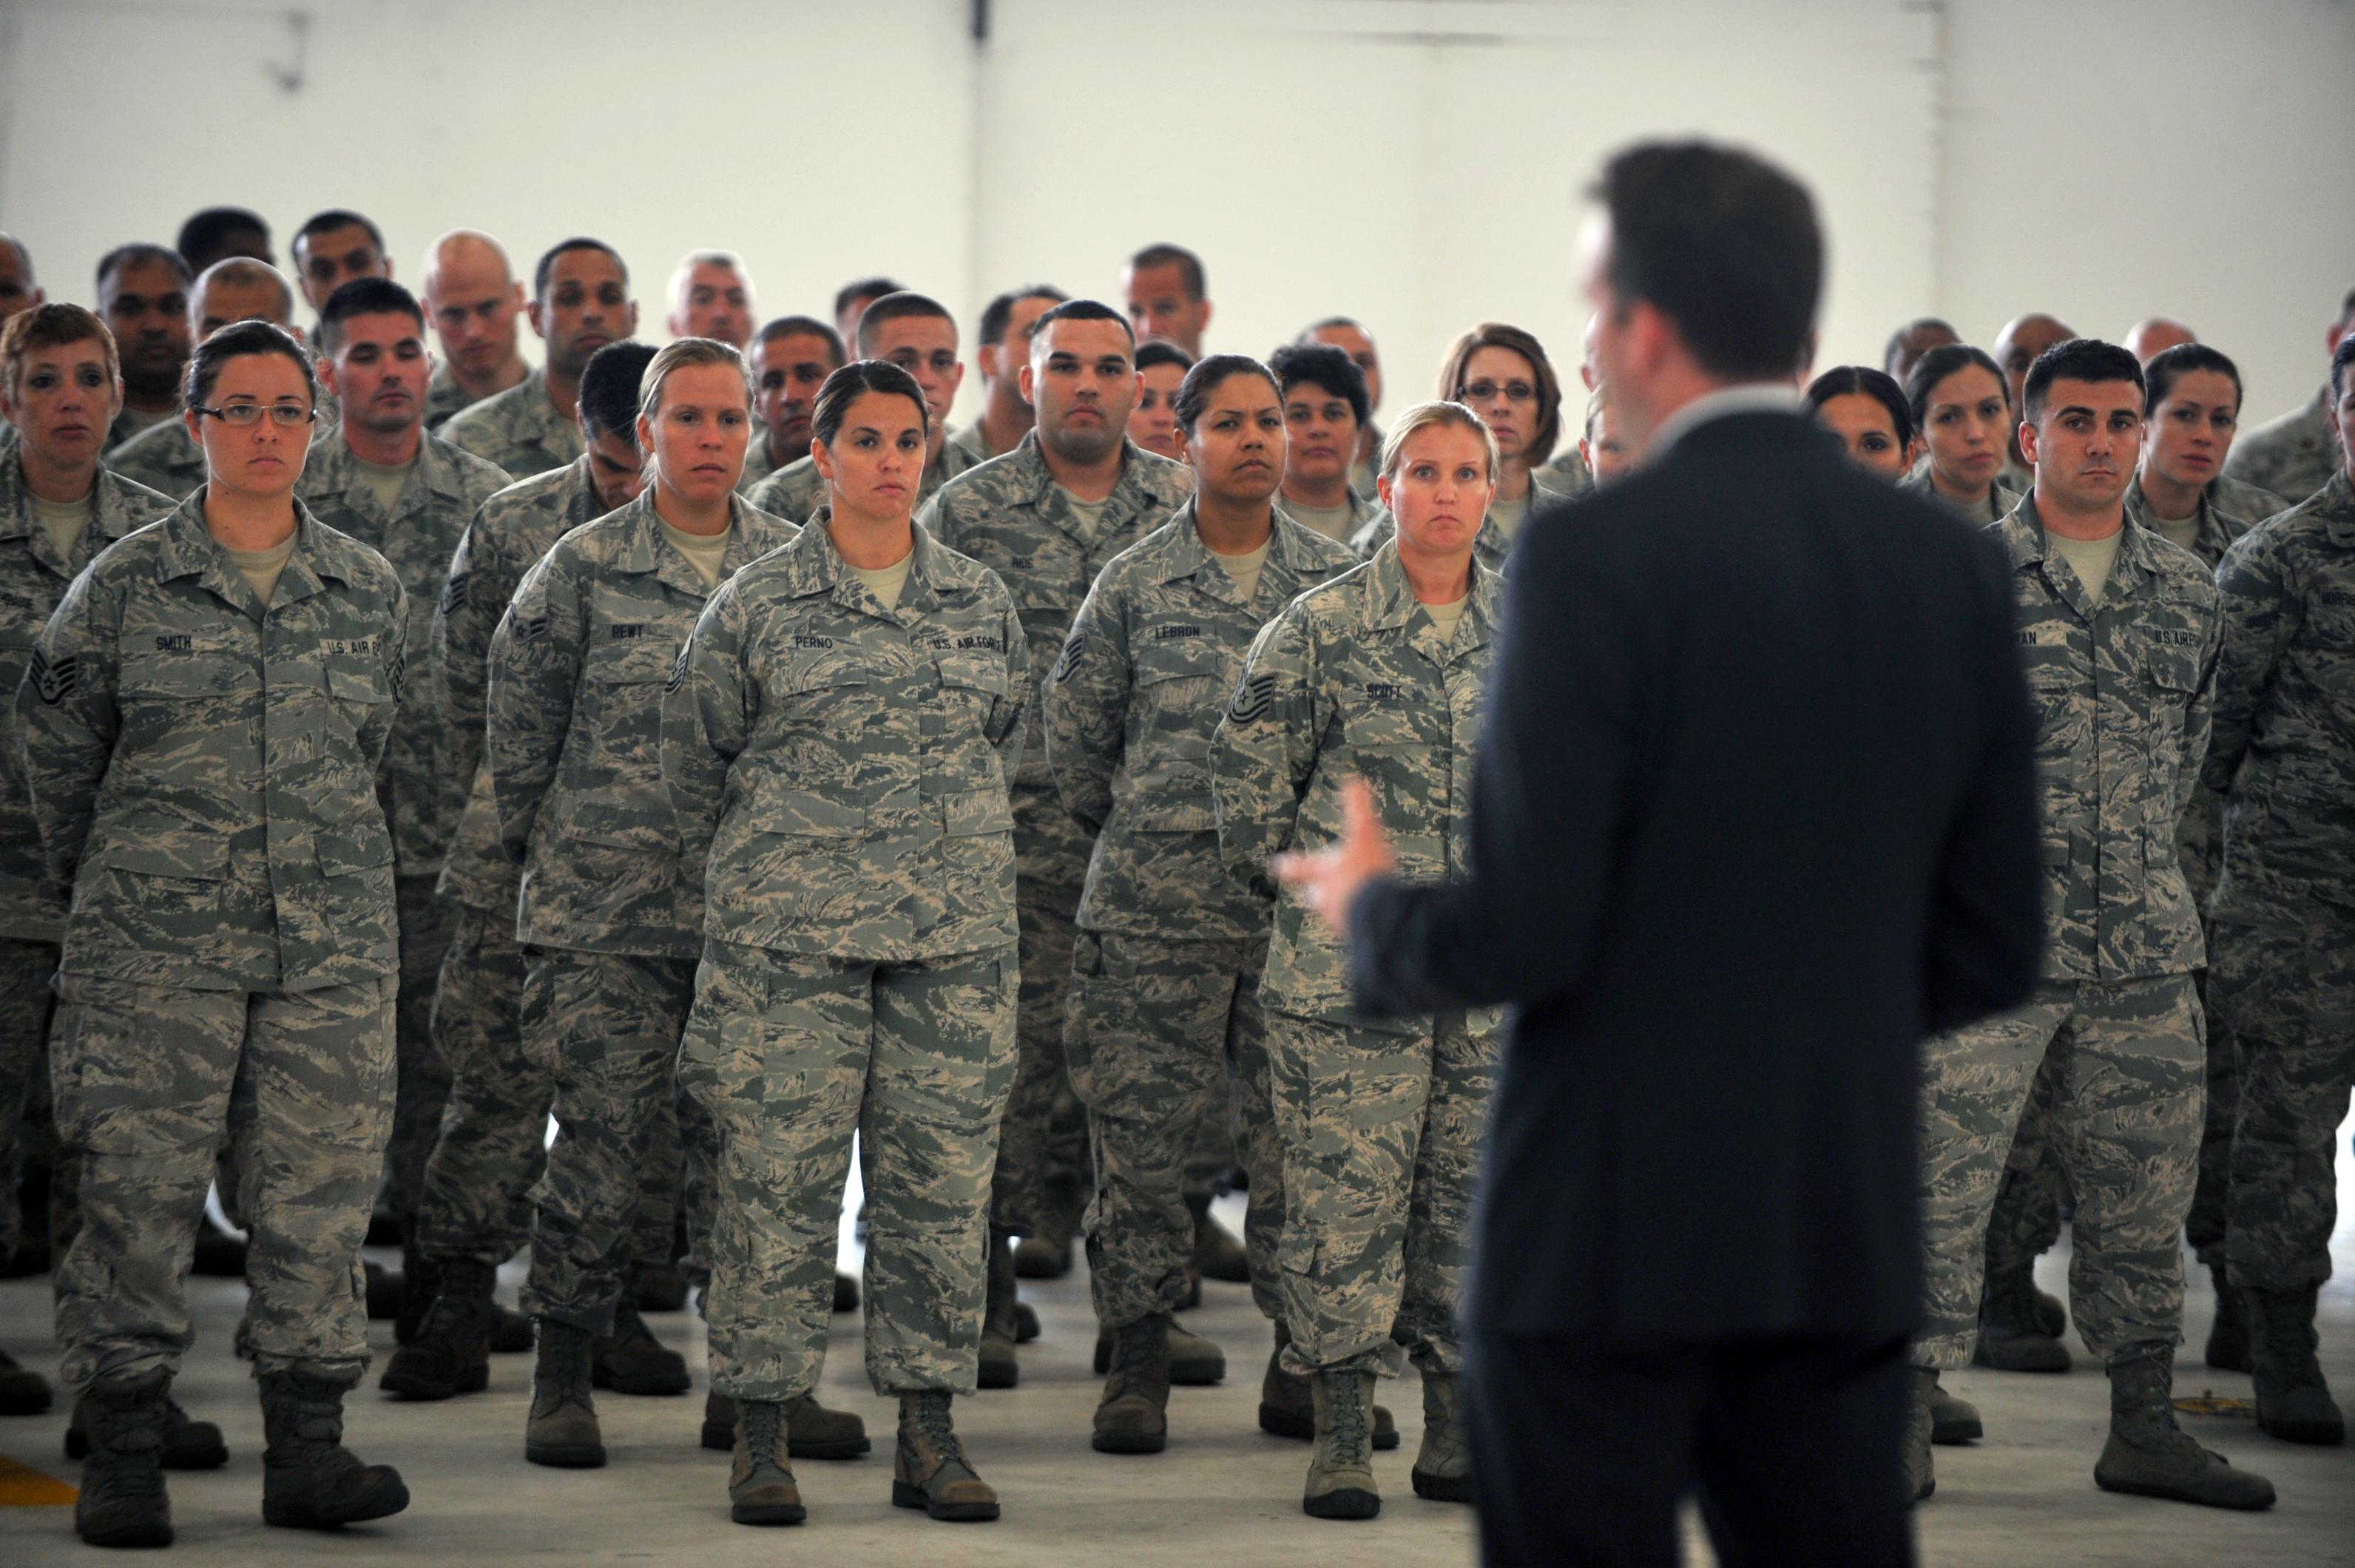 Acting Air Force Secretary Visits 106th Rescue Wing